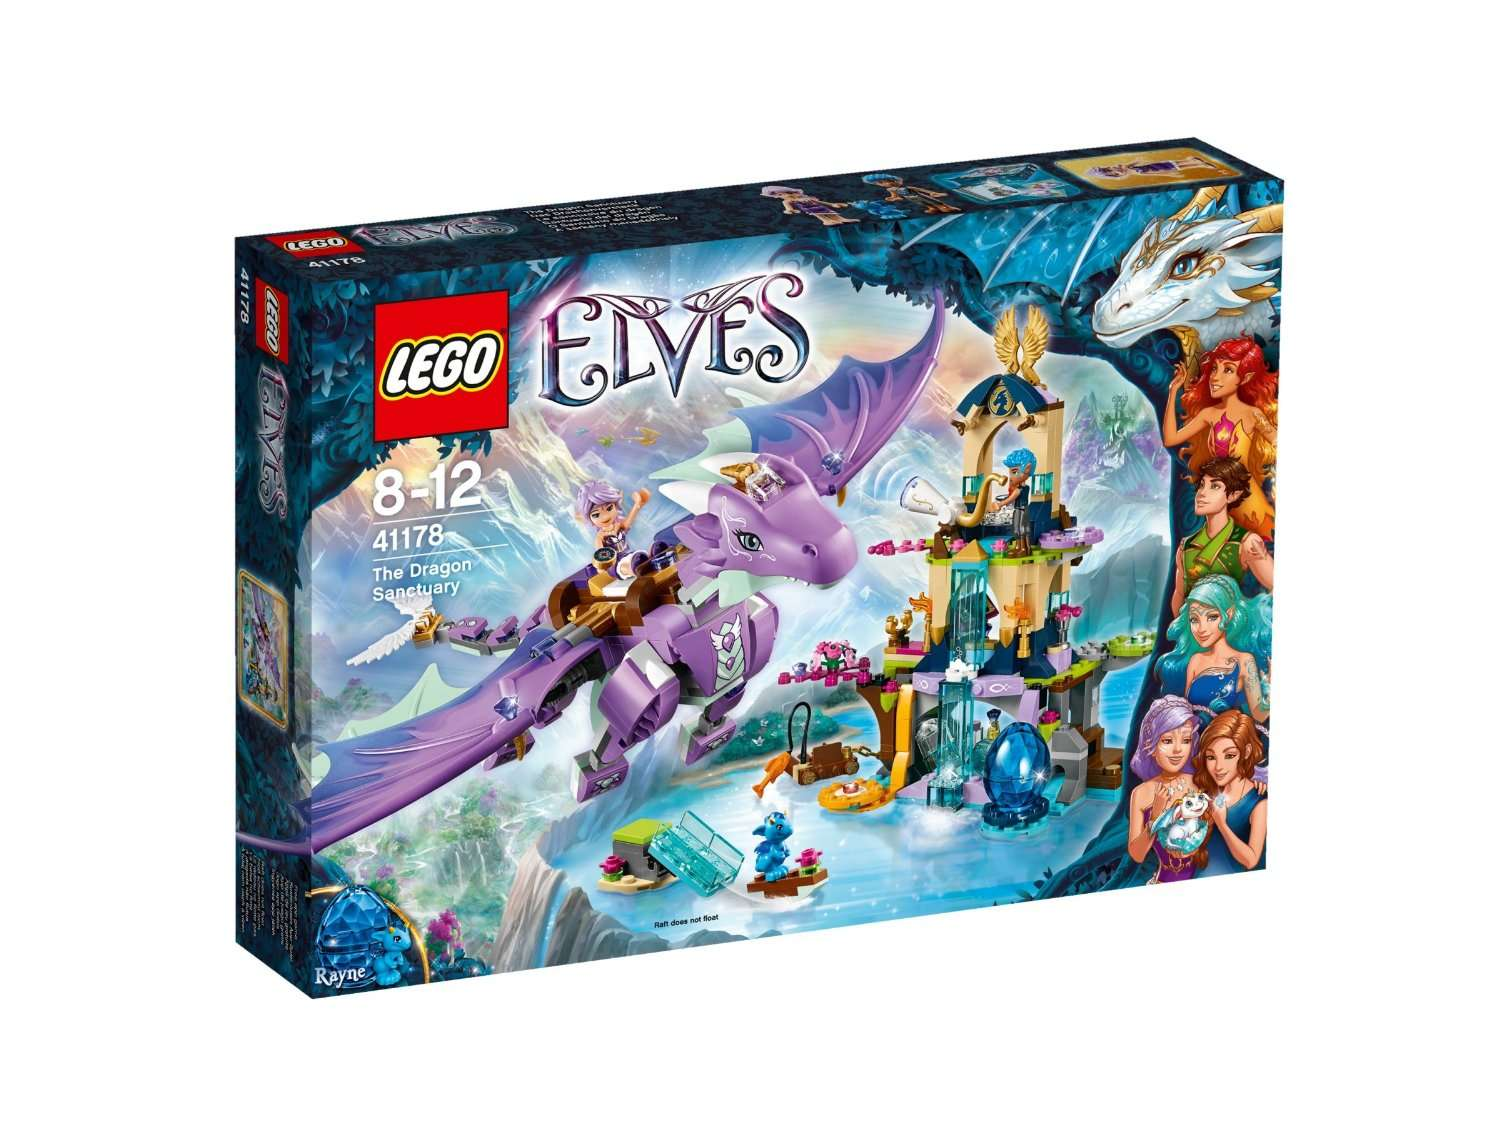 Lego Elves 2016 ! - Page 7 91z6-f10